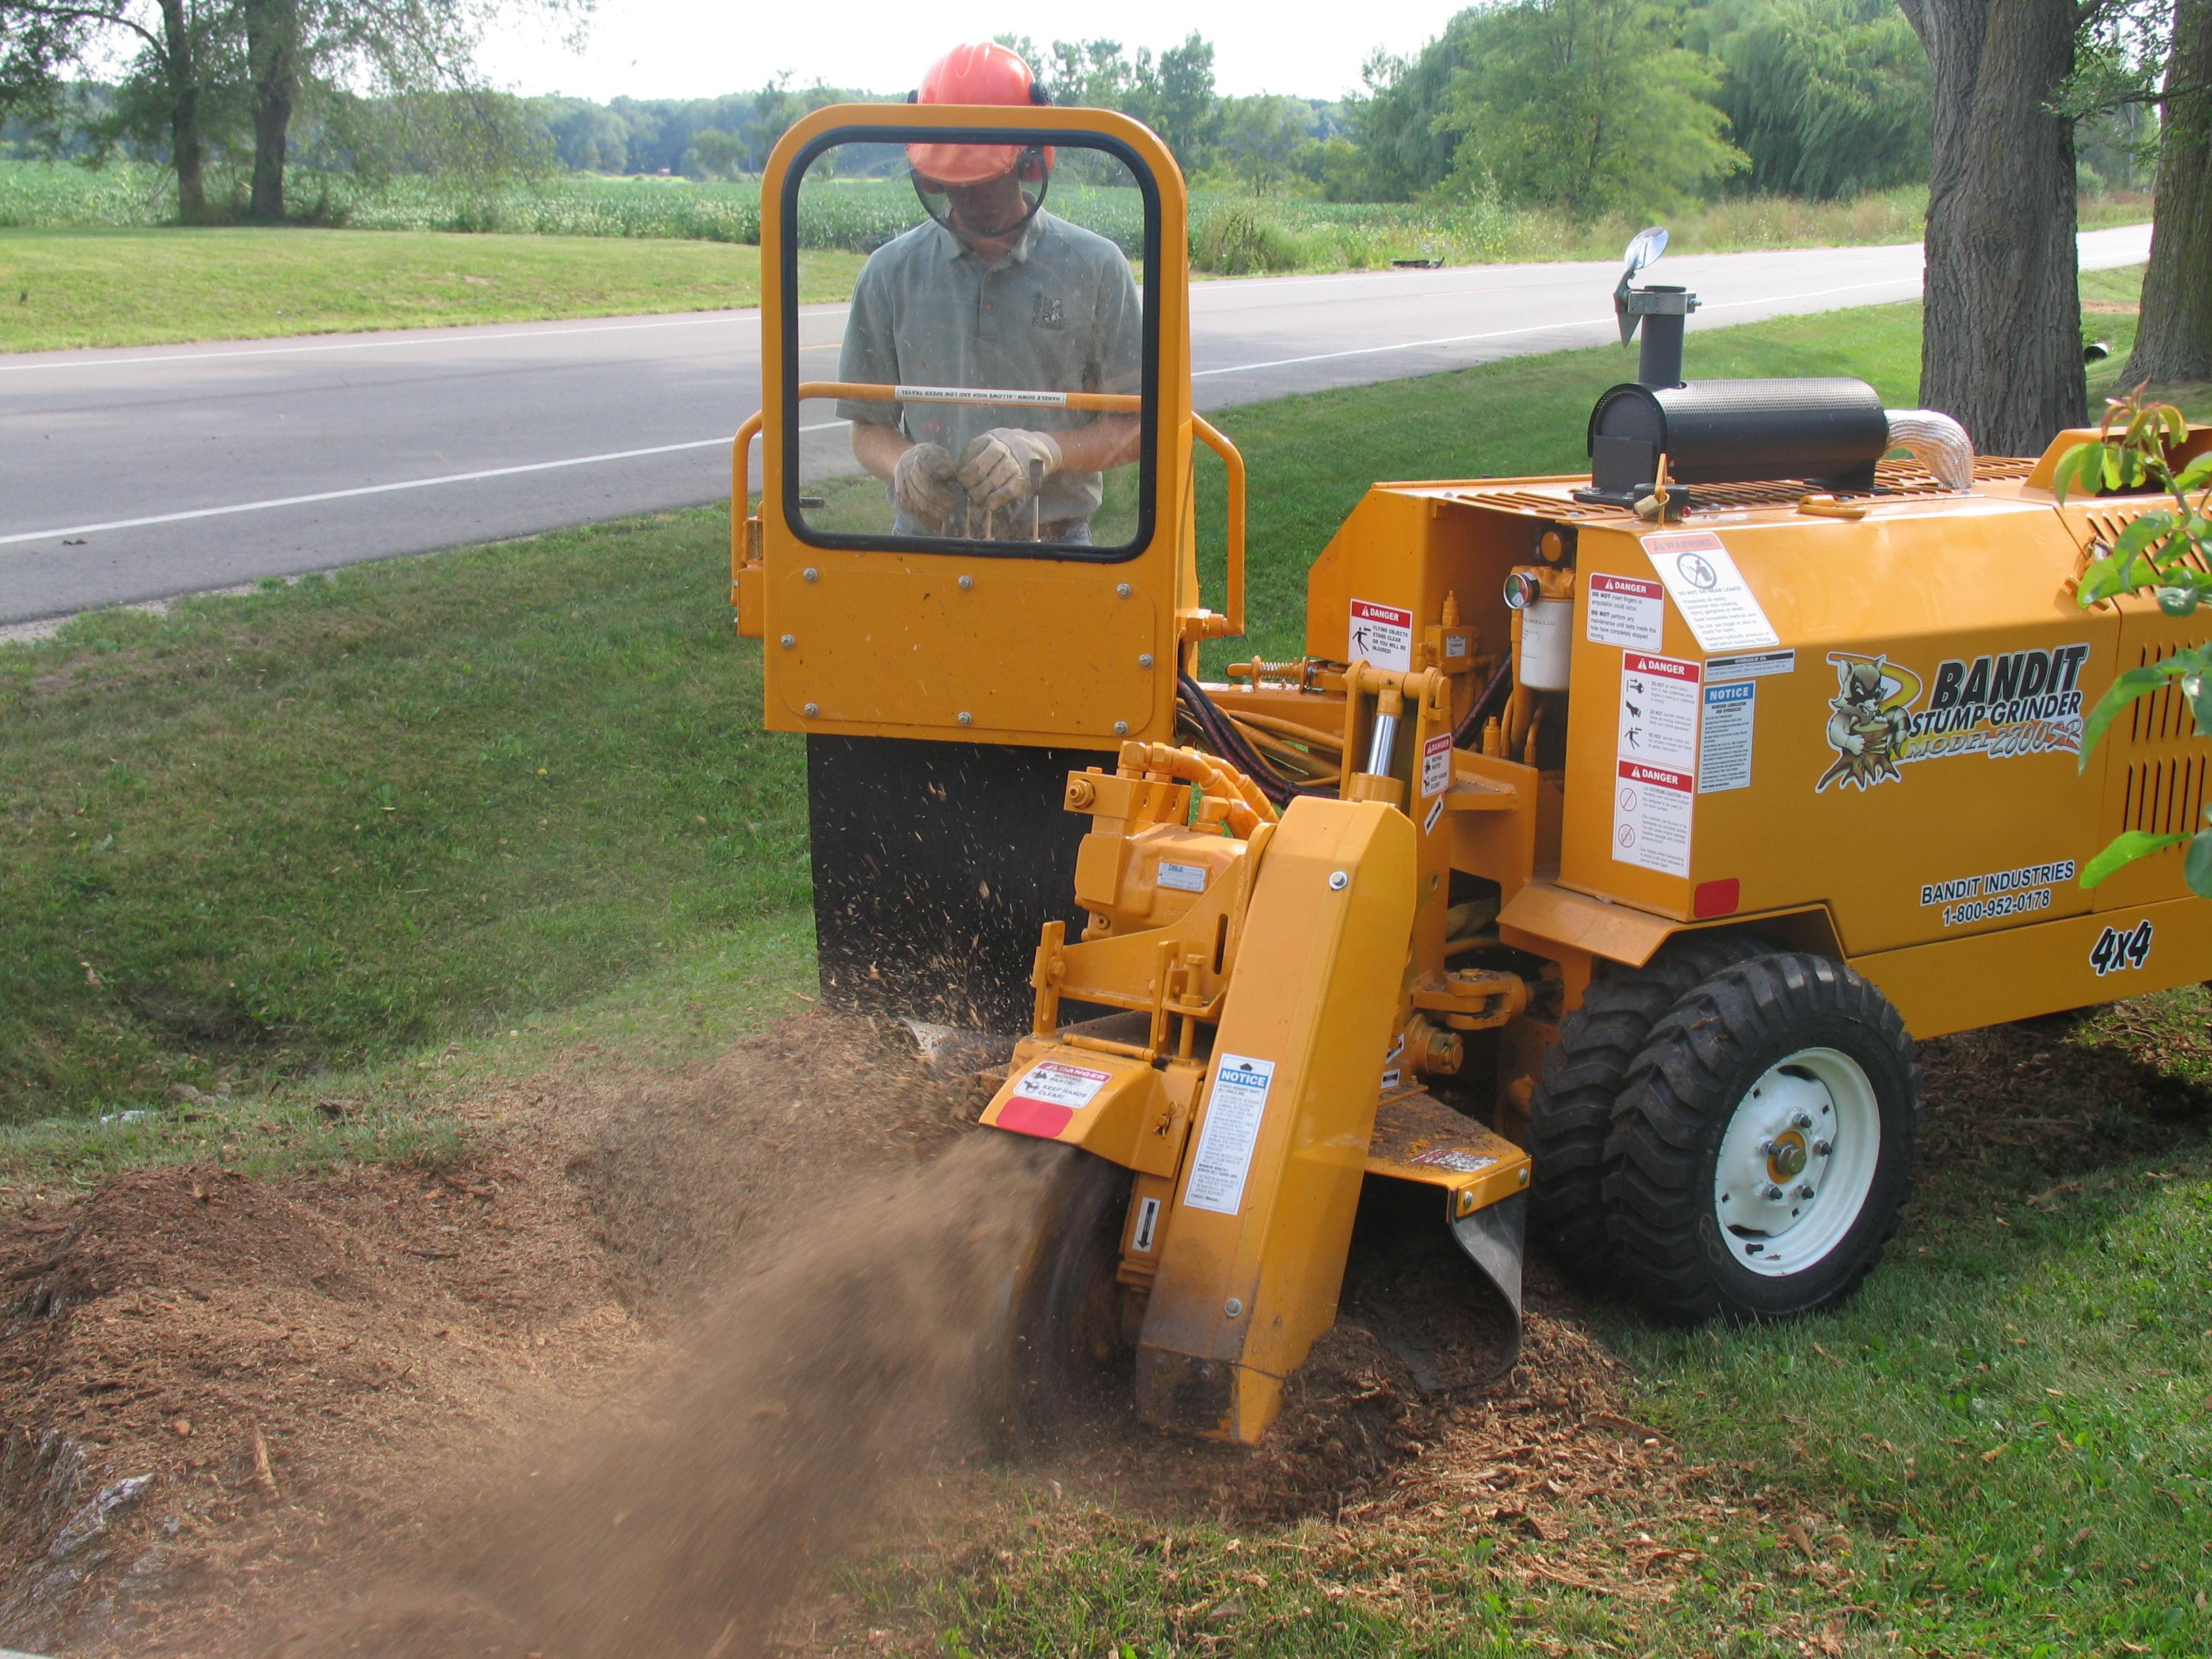 Stump Grinder removing tree stump